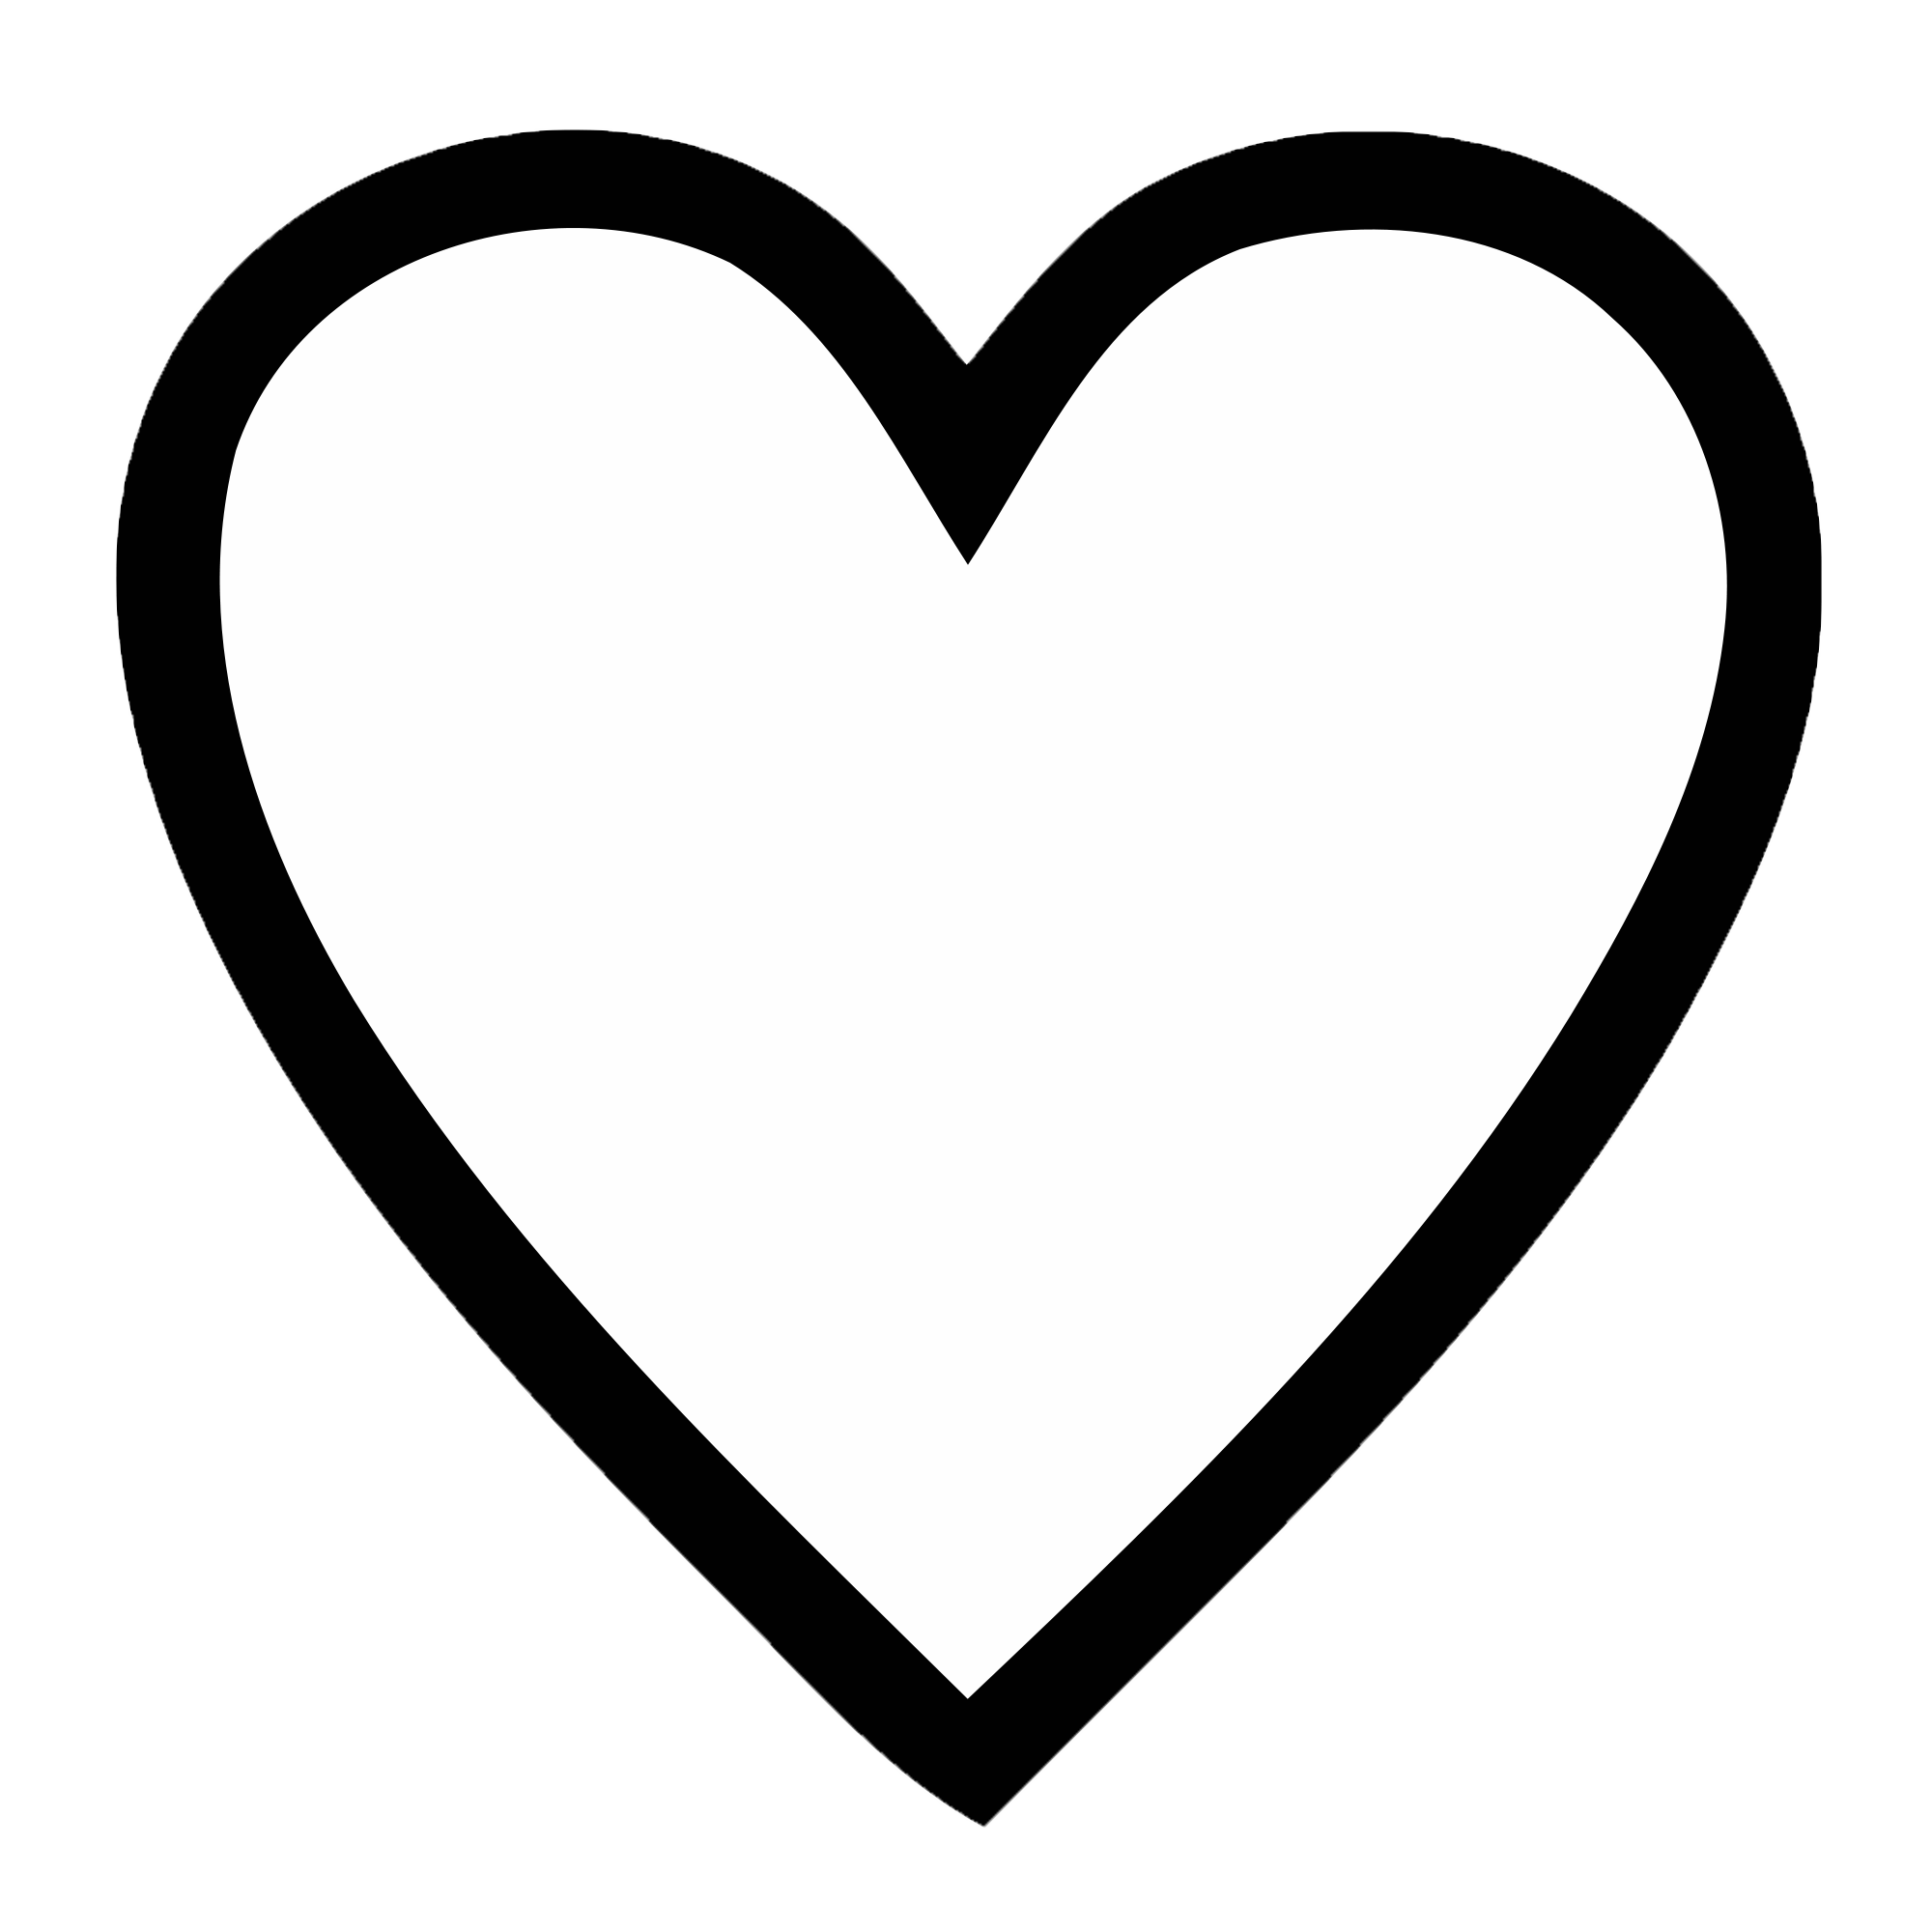 Colored crown with a heart inside clipart graphic freeuse File:Heart-SG2001-transparent.png.png - Wikipedia, the free ... graphic freeuse